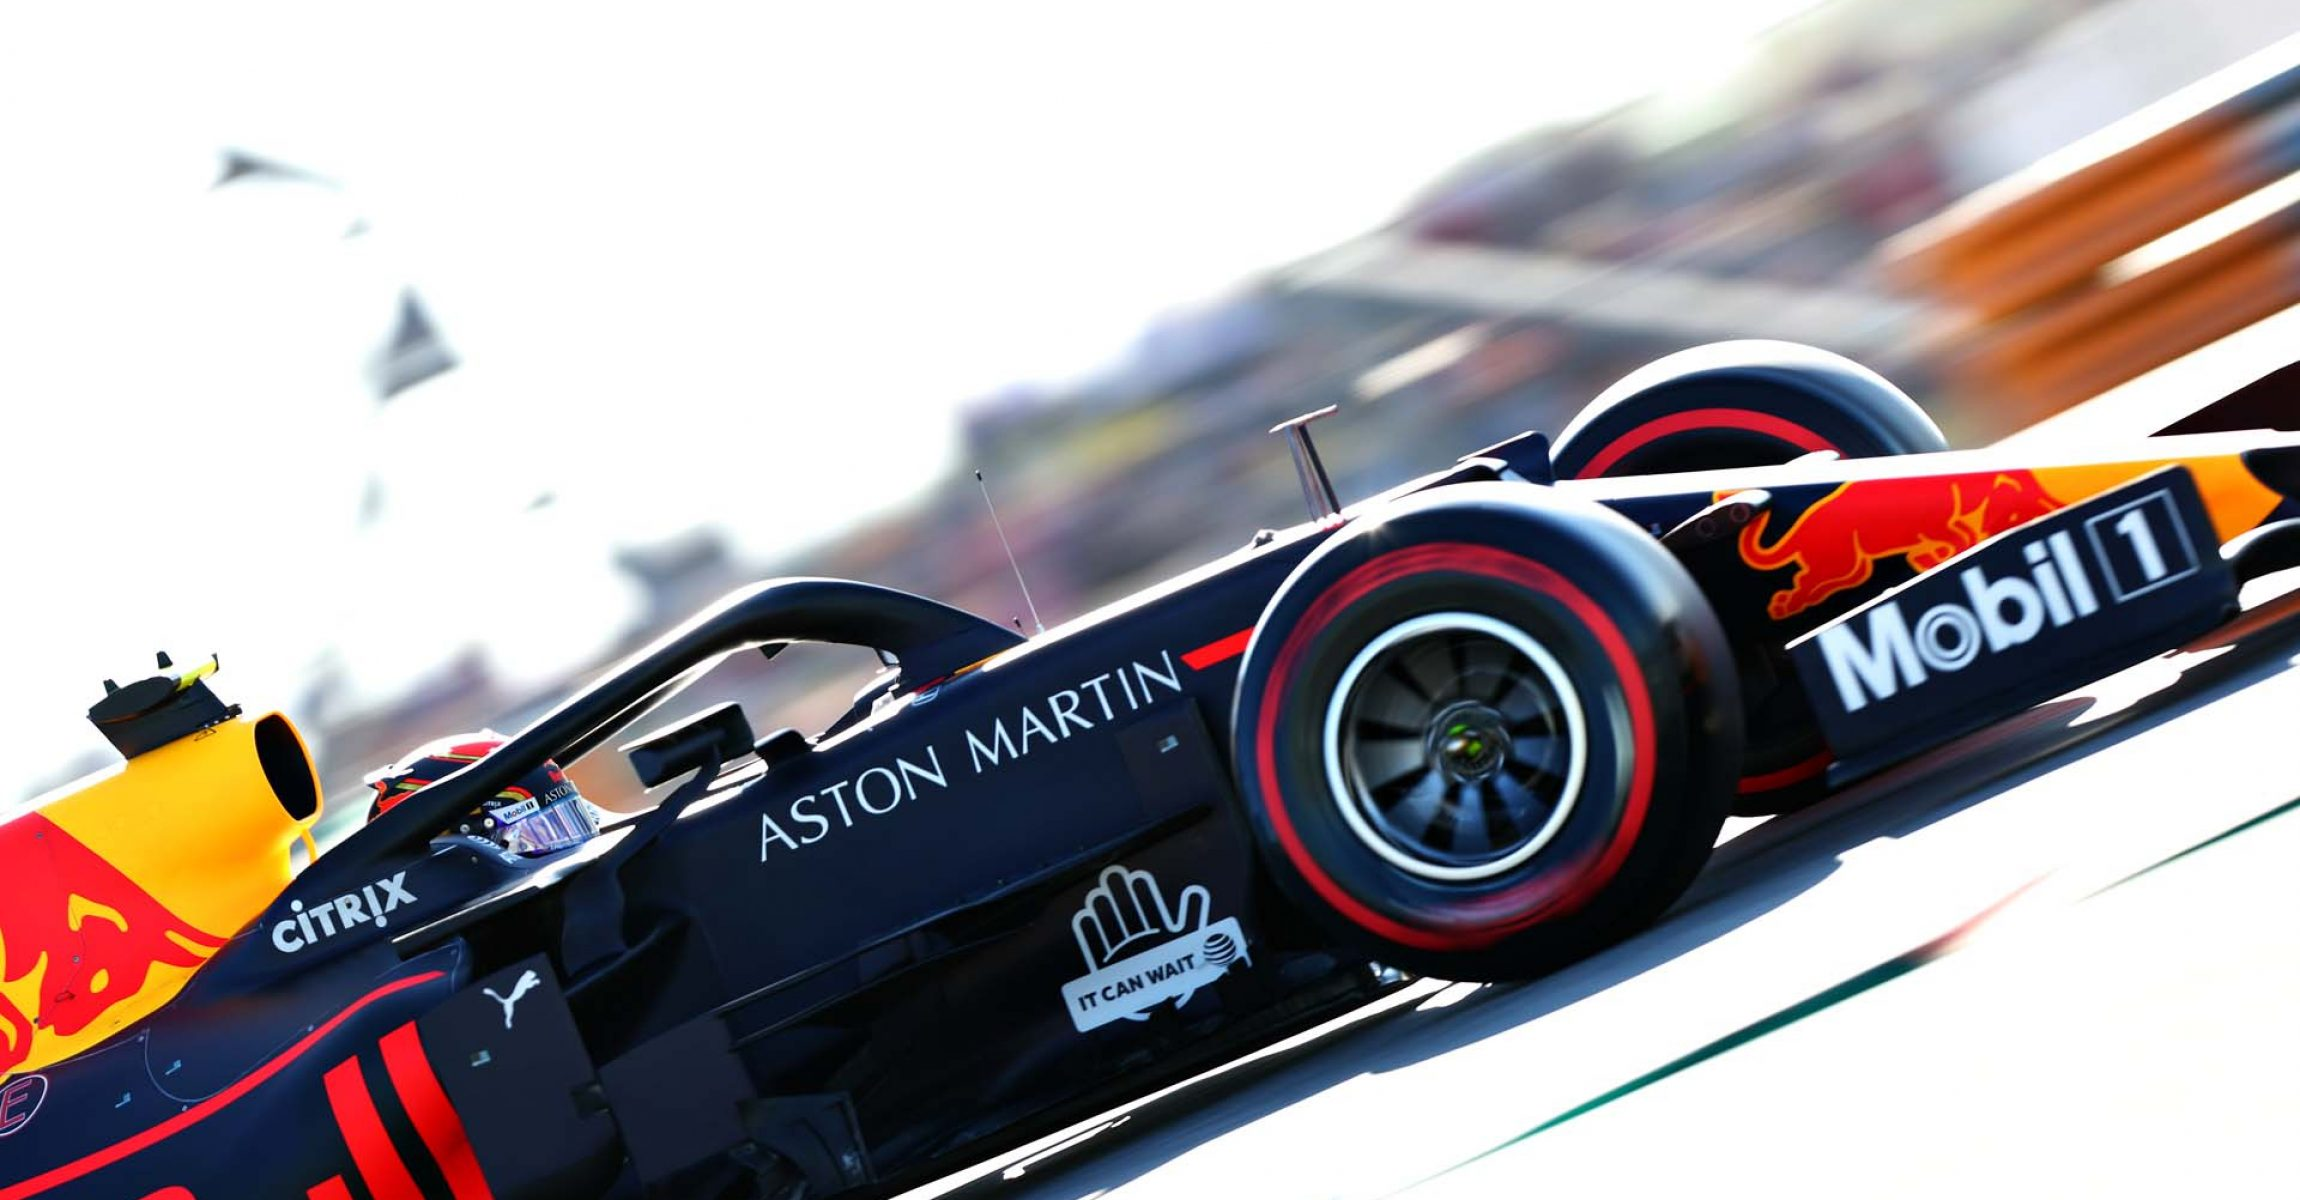 AUSTIN, TEXAS - NOVEMBER 02: Alexander Albon of Thailand driving the (23) Aston Martin Red Bull Racing RB15 on track during qualifying for the F1 Grand Prix of USA at Circuit of The Americas on November 02, 2019 in Austin, Texas. (Photo by Dan Istitene/Getty Images) // Getty Images / Red Bull Content Pool // AP-222M68C8N2111 // Usage for editorial use only //